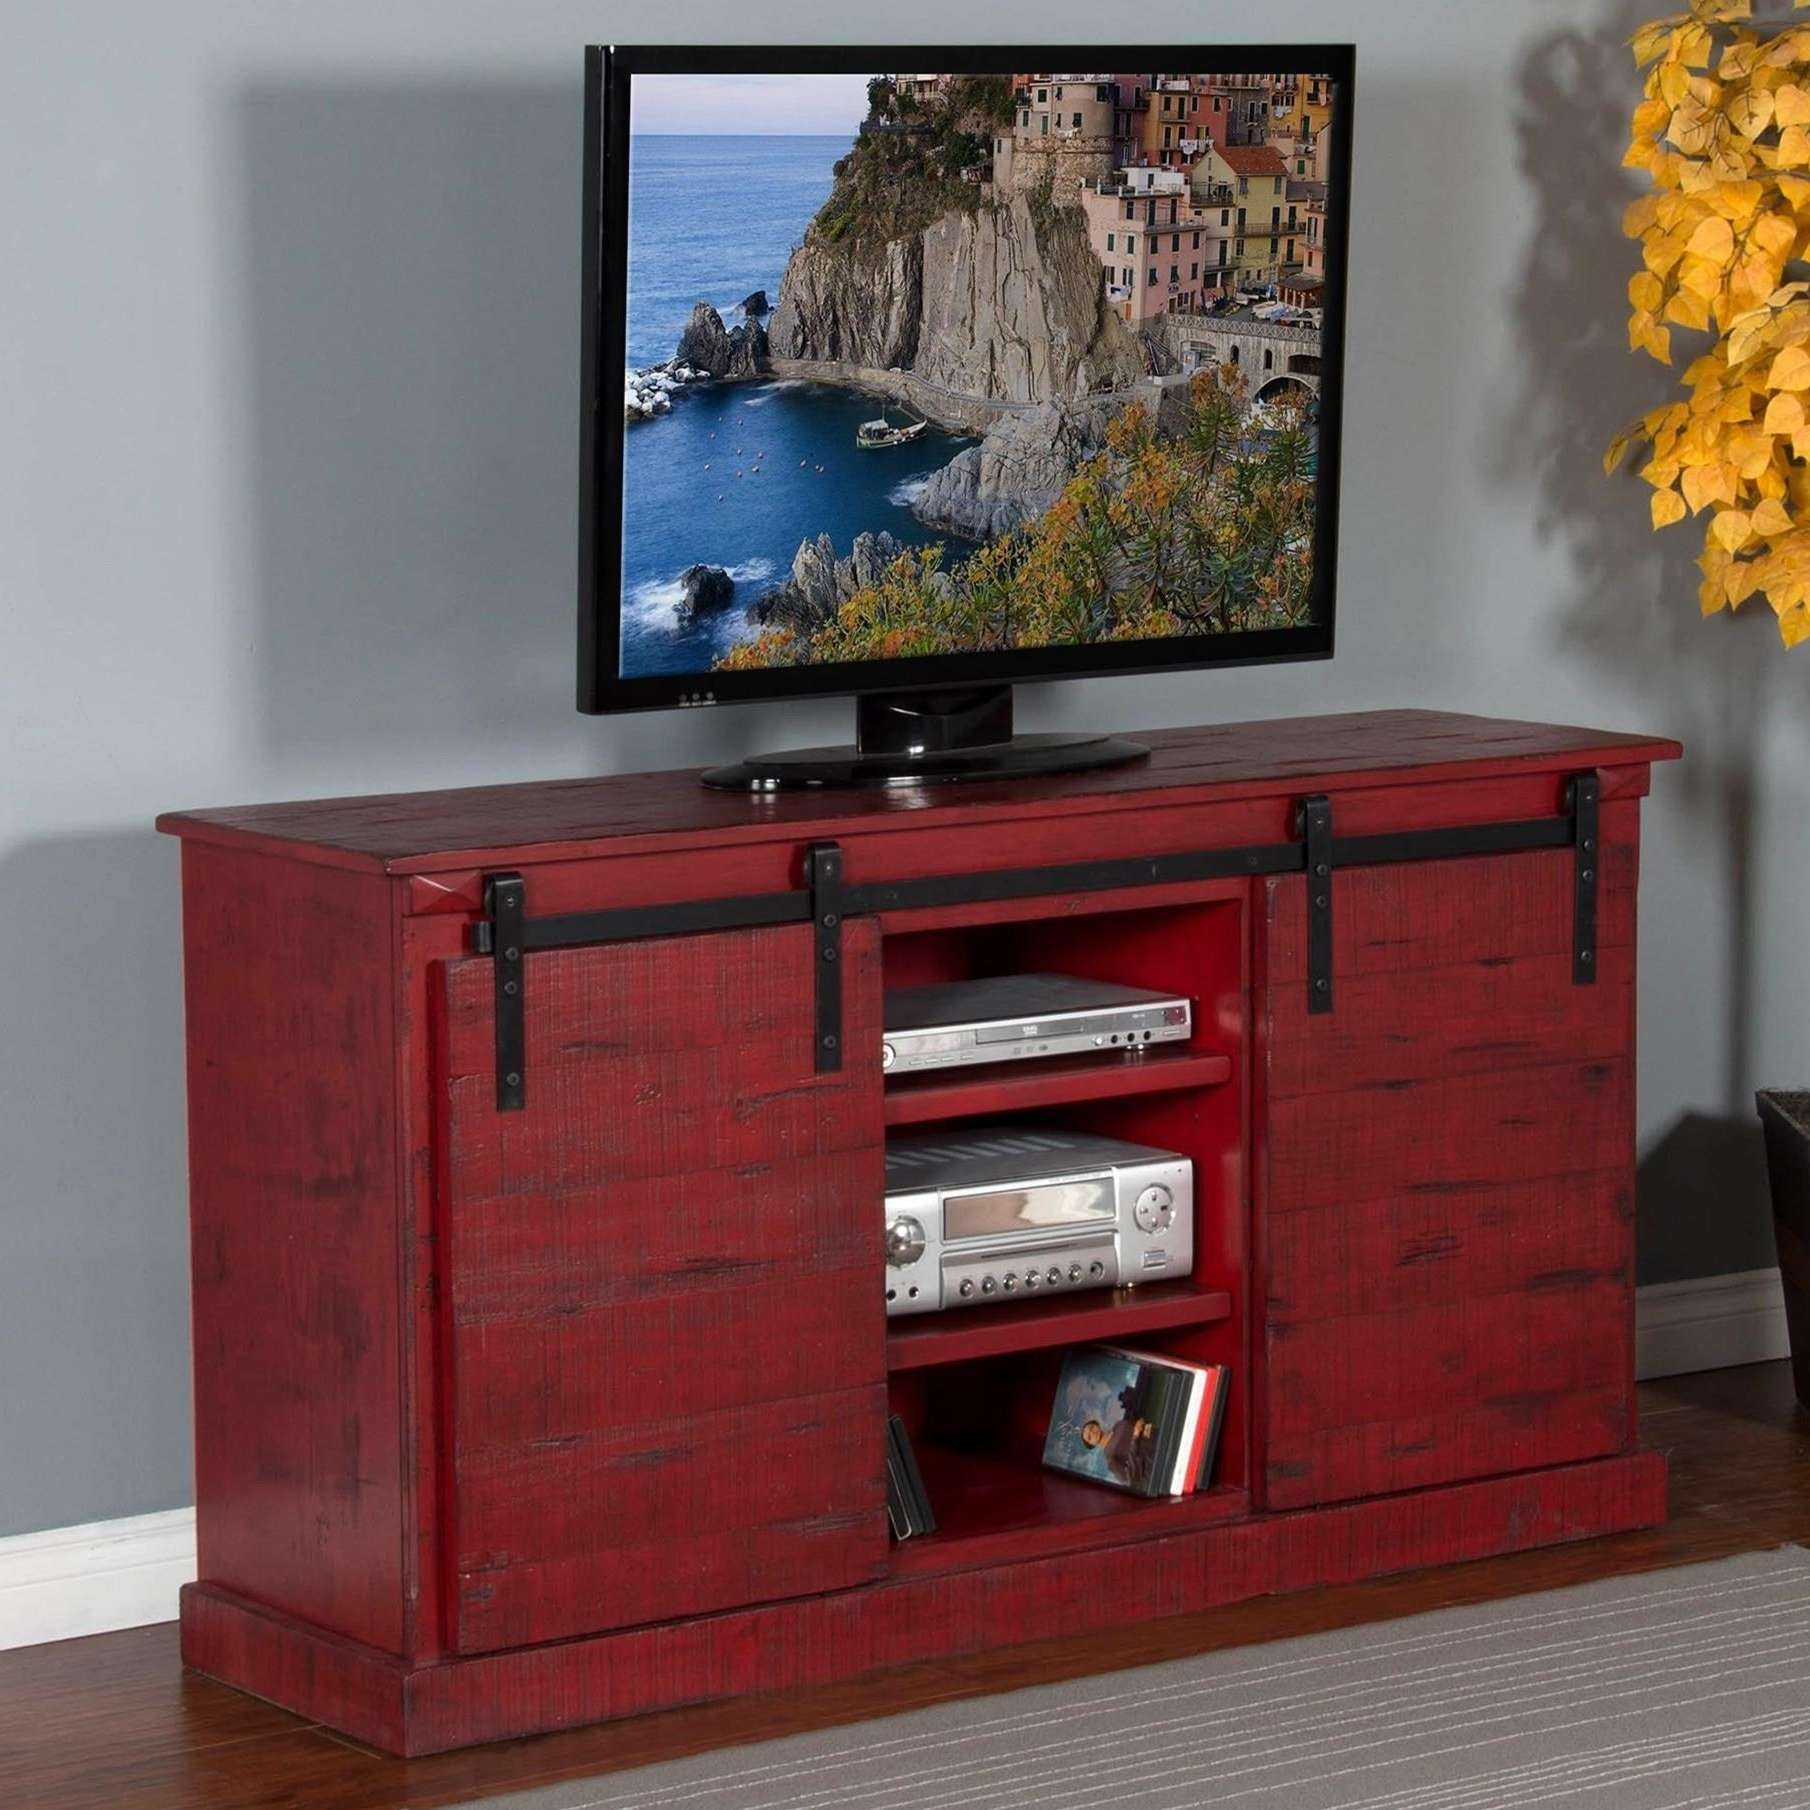 Shop Tv Stands | Wolf And Gardiner Wolf Furniture Inside Red Tv Stands (View 8 of 15)